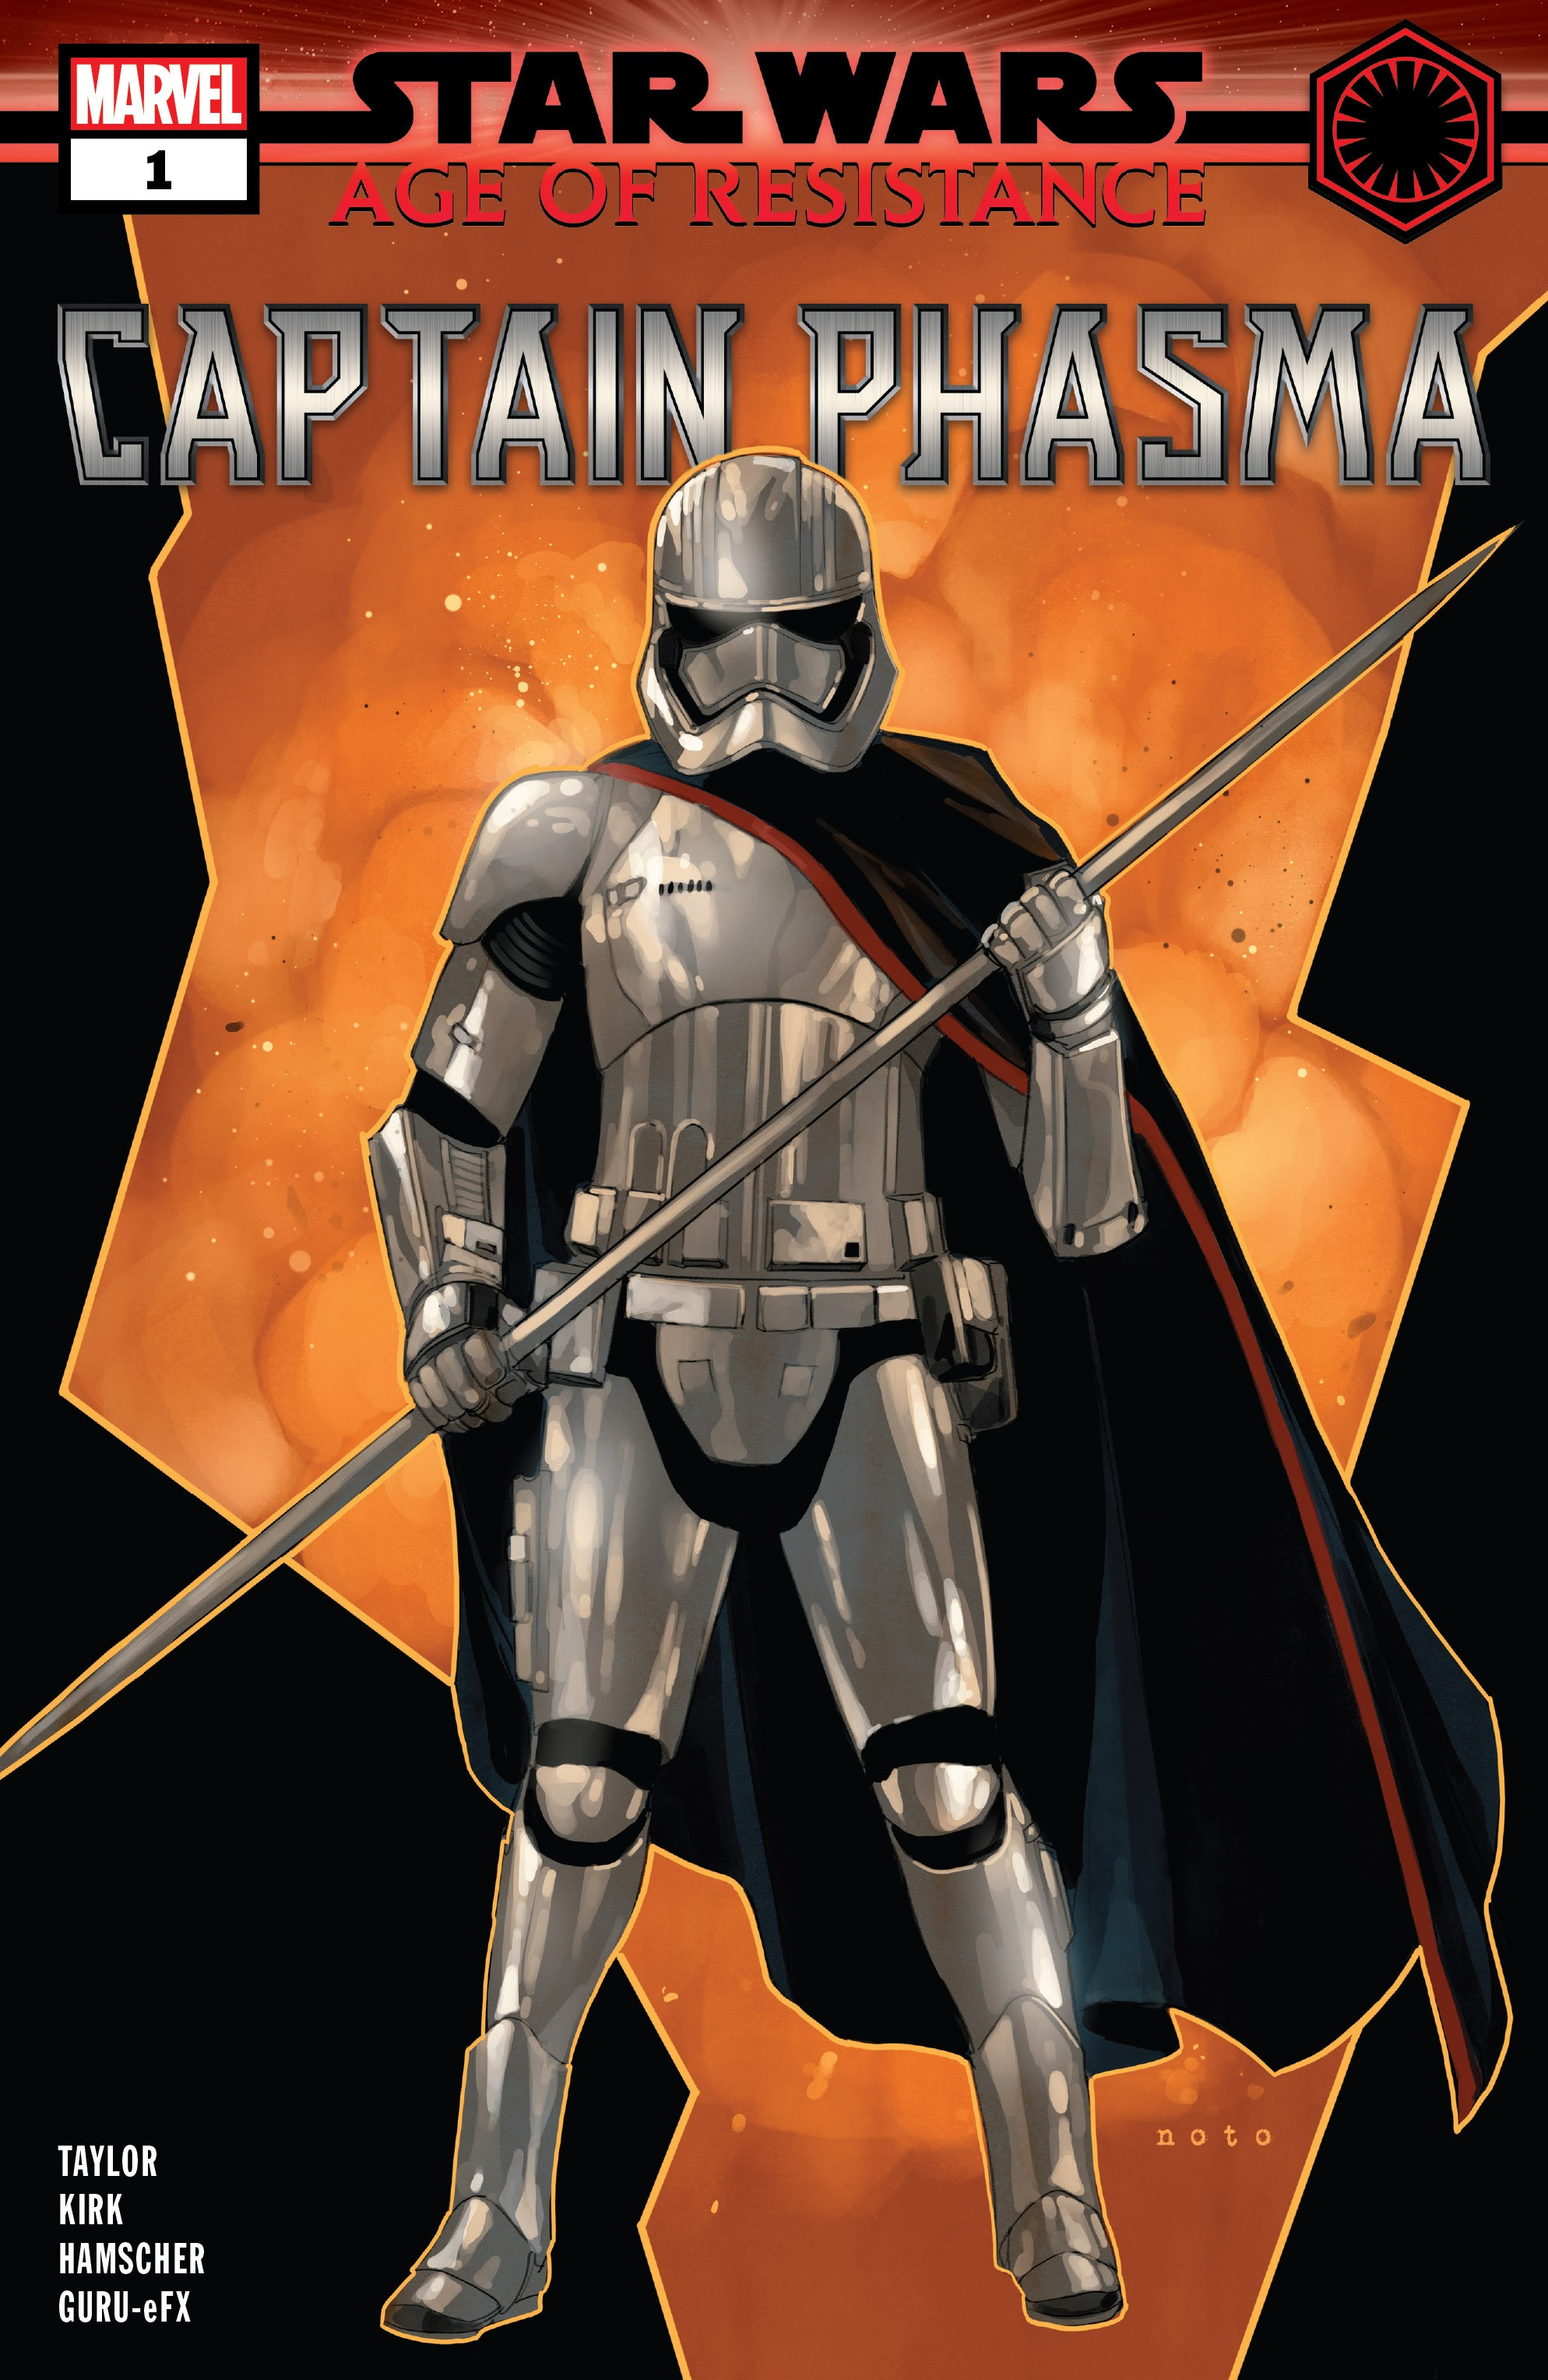 Star Wars: Age Of Resistance Captain_Phasma Page 1